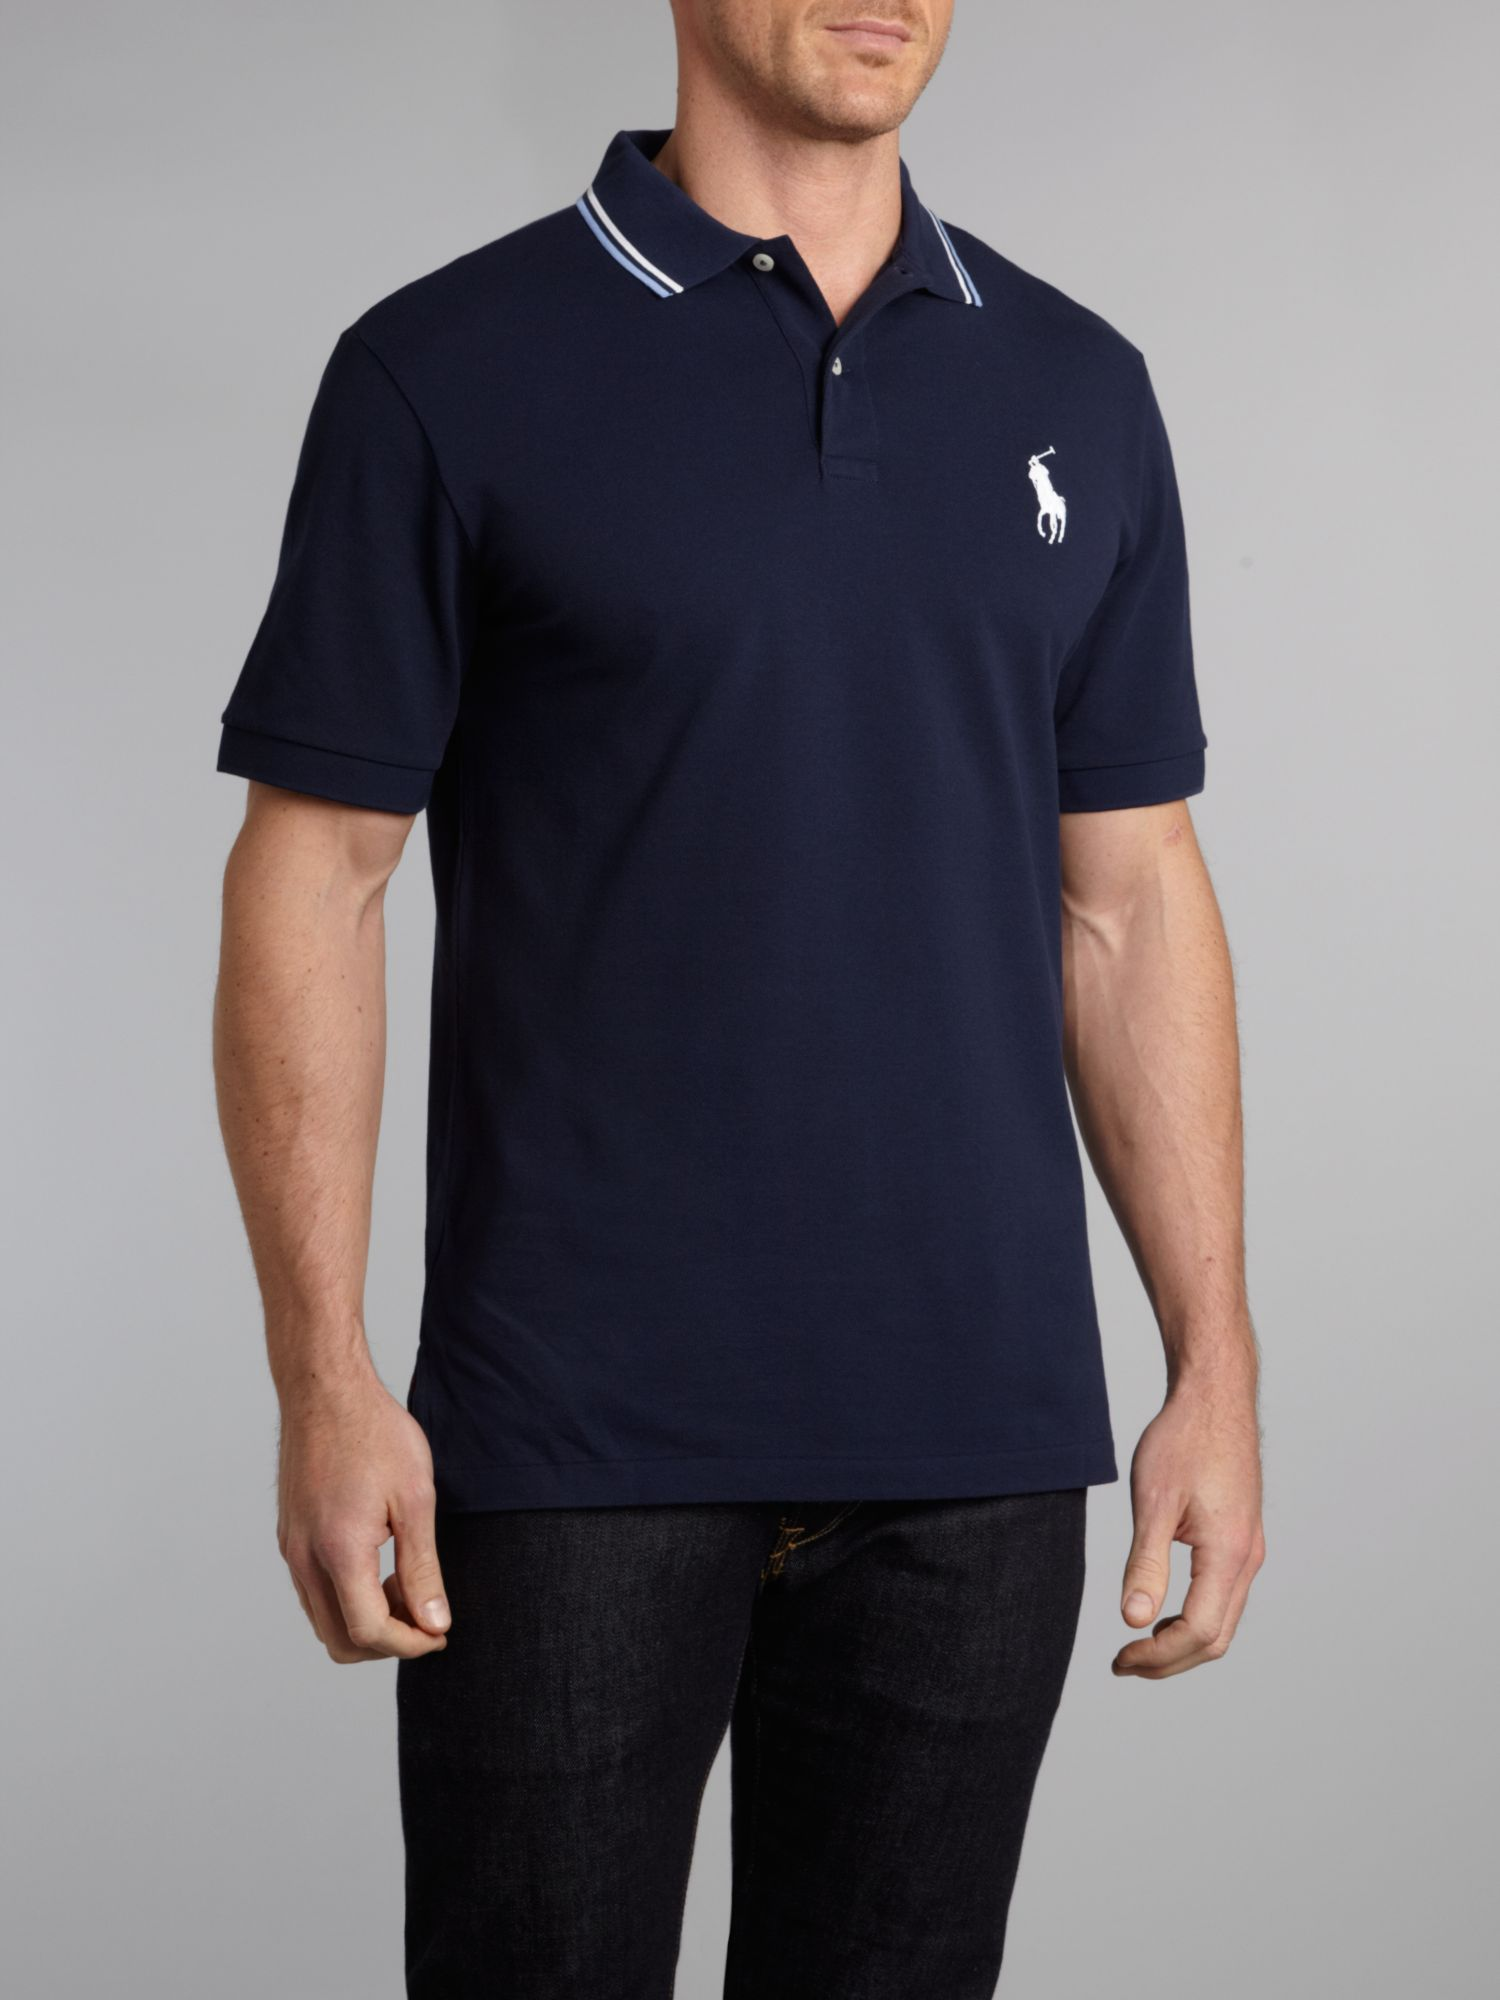 Ralph Lauren Men's White Navy Big Pony Polo